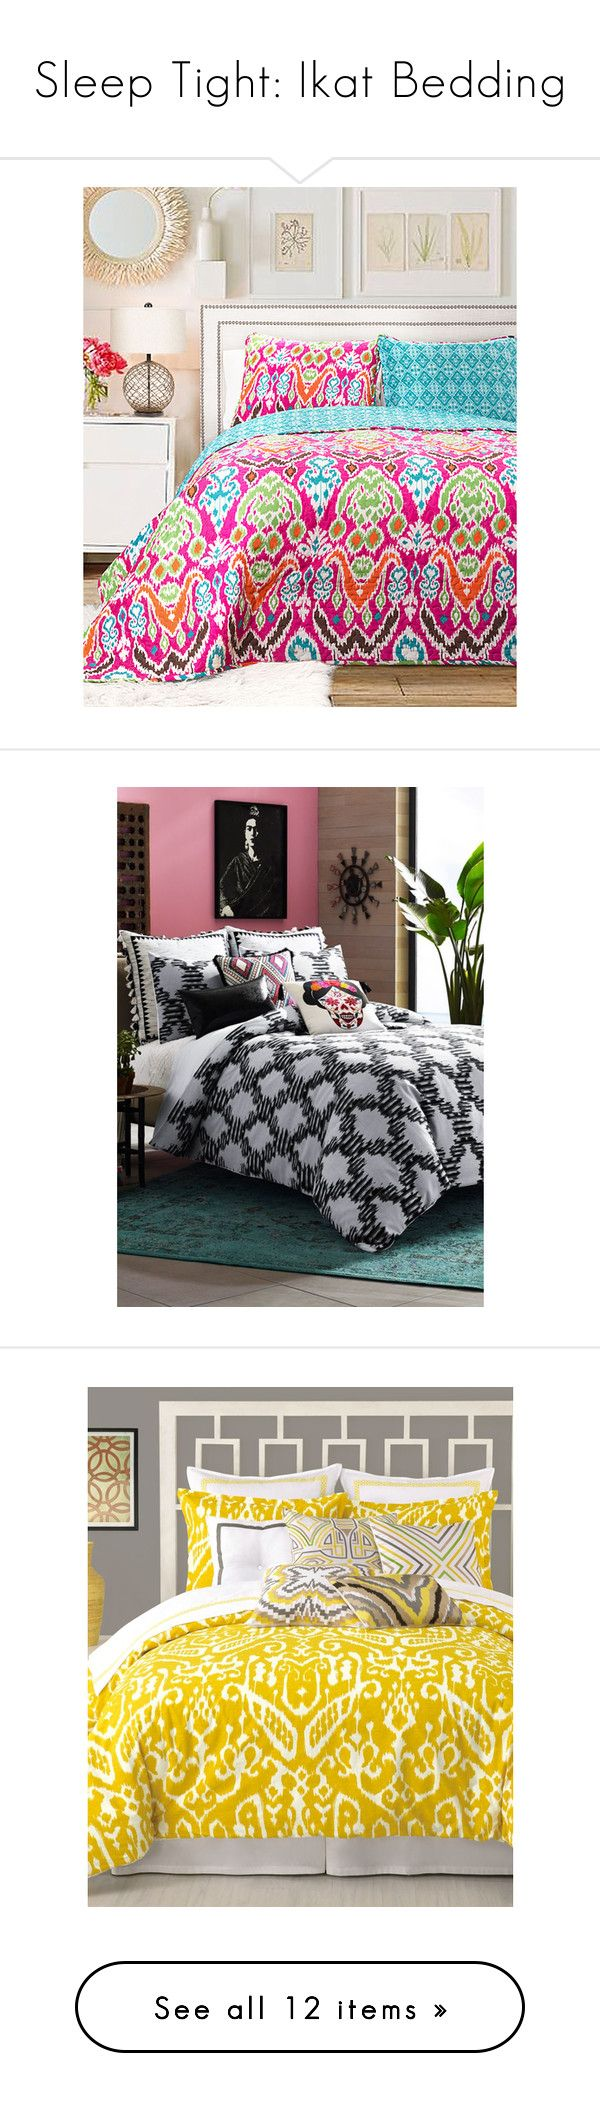 """Sleep Tight: Ikat Bedding"" by polyvore-editorial ❤ liked on Polyvore featuring ikatbedding, home, bed & bath, bedding, quilts, fuchsia bedding, ikat bedding, fuschia bedding, lush decor bedding and 3 piece quilt set"